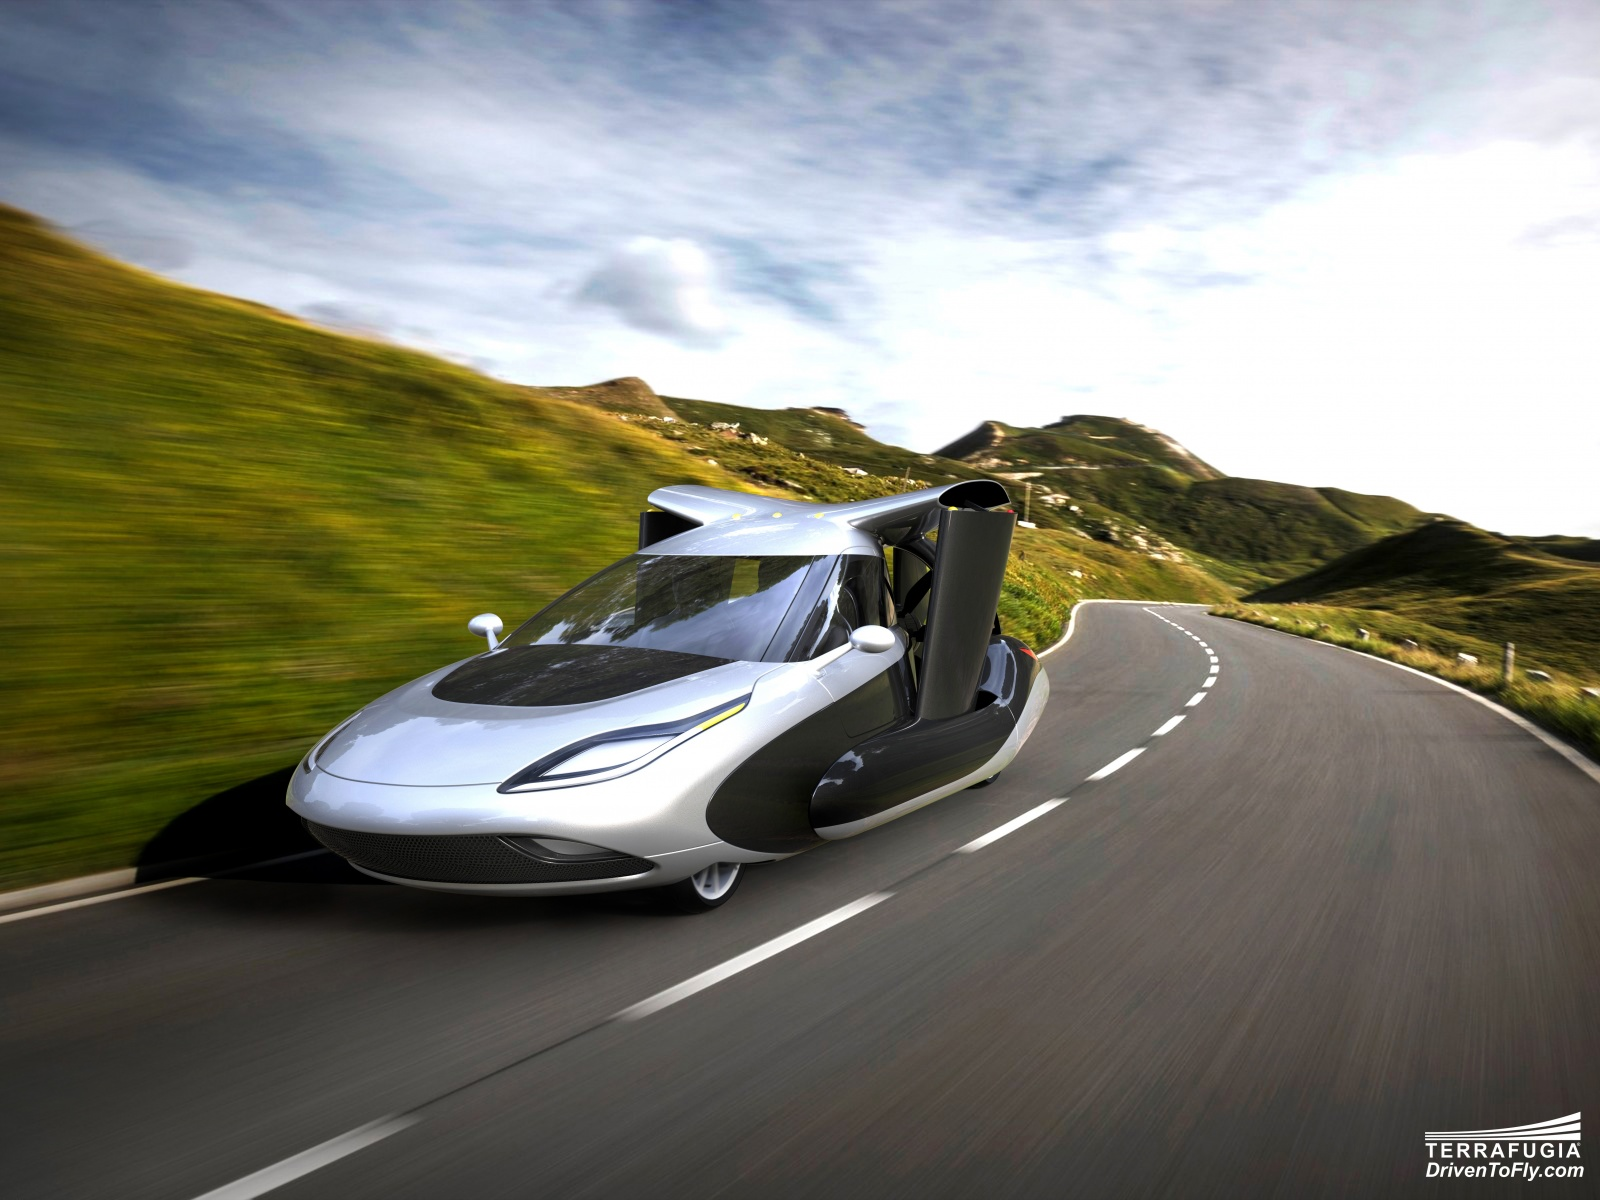 the-flying-car-just-got-approved-for-testing-photo-gallery_1